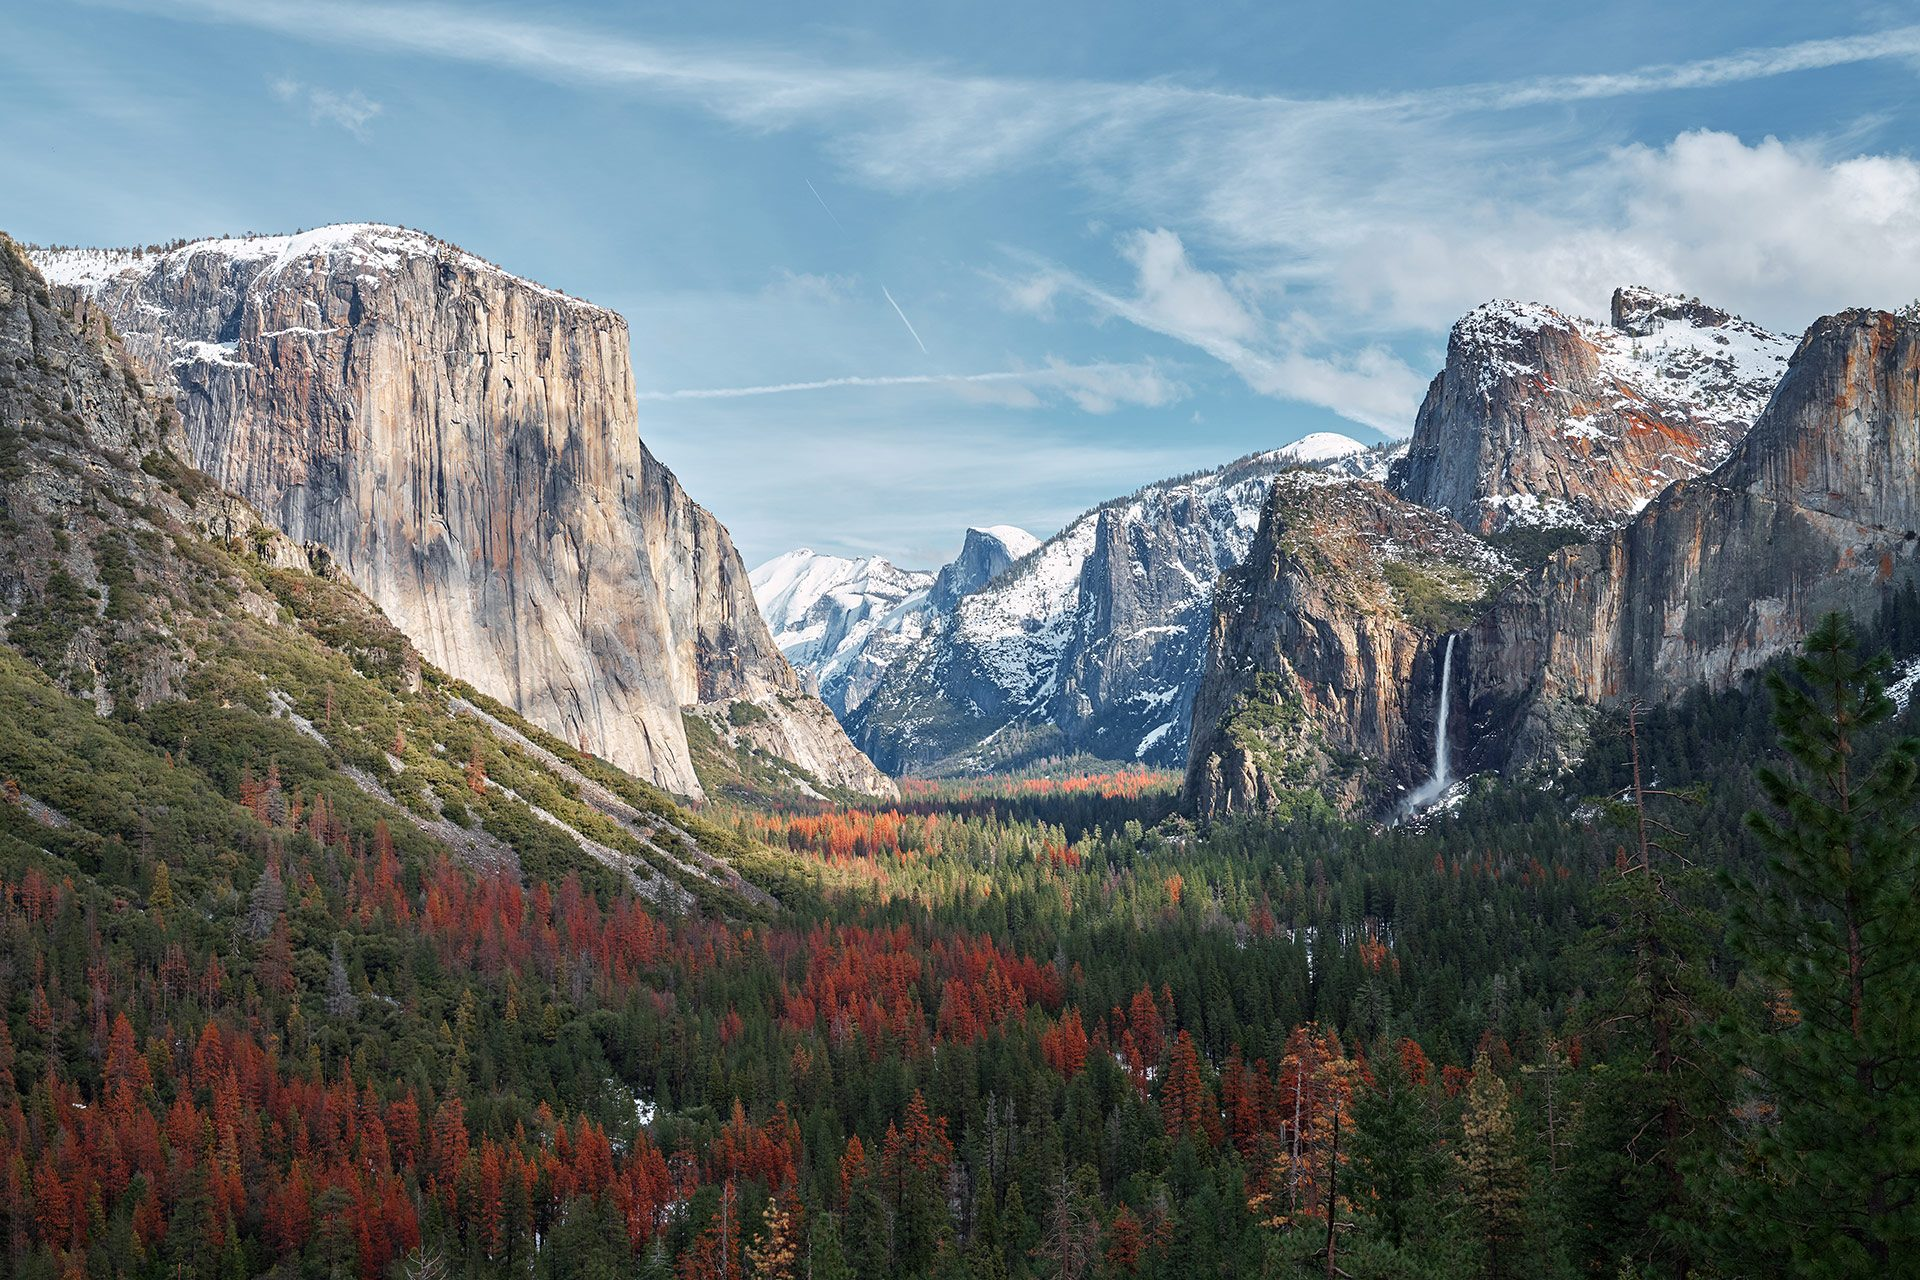 Hiking and Horseback-Riding in Yosemite Travel Guide For Beginners